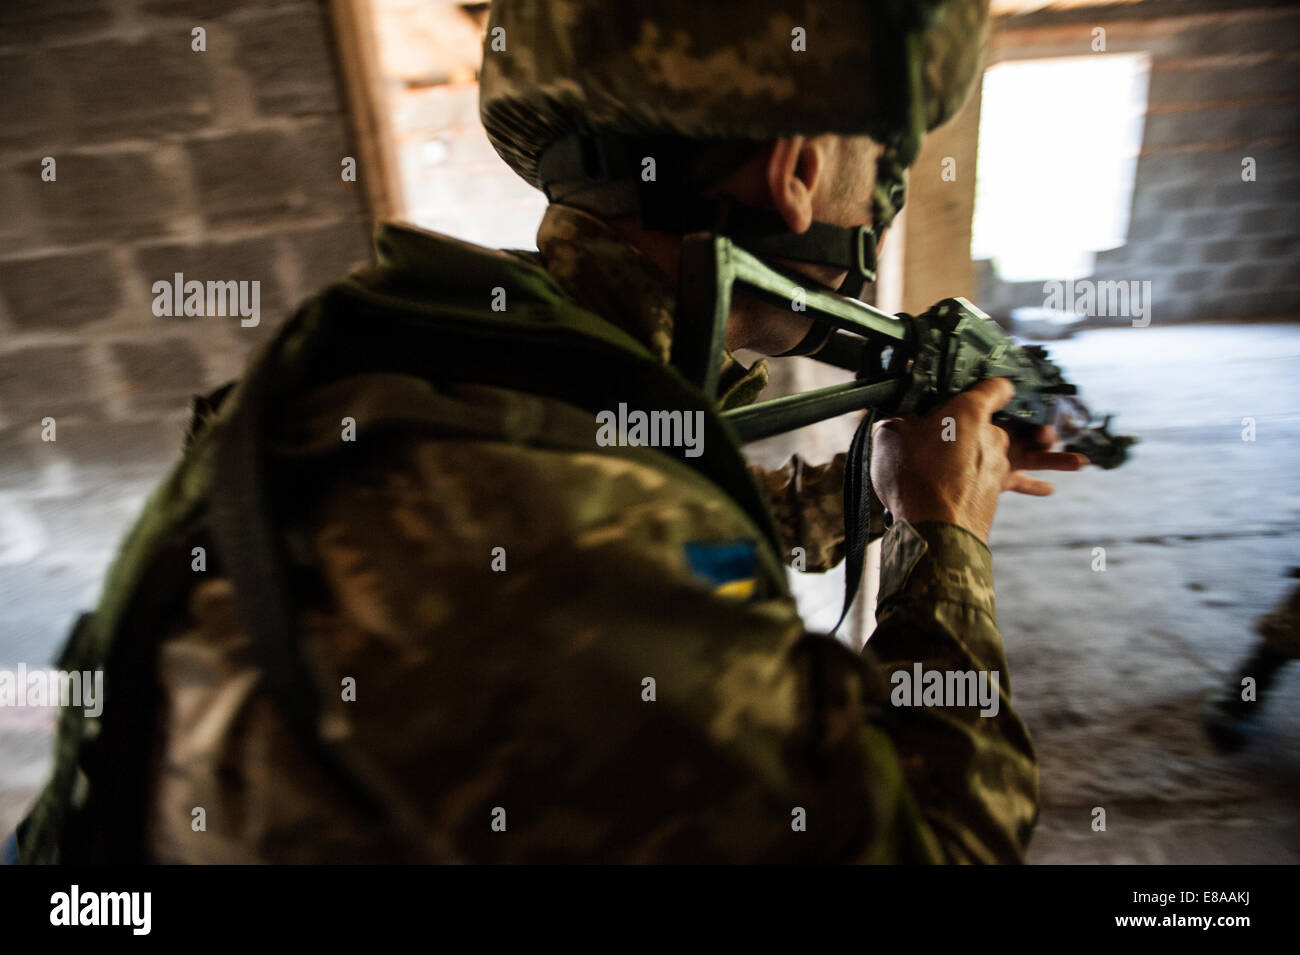 A Ukrainian marine clears a room during a situational training exercise as part of Rapid Trident 2014 in Yavoriv, - Stock Image